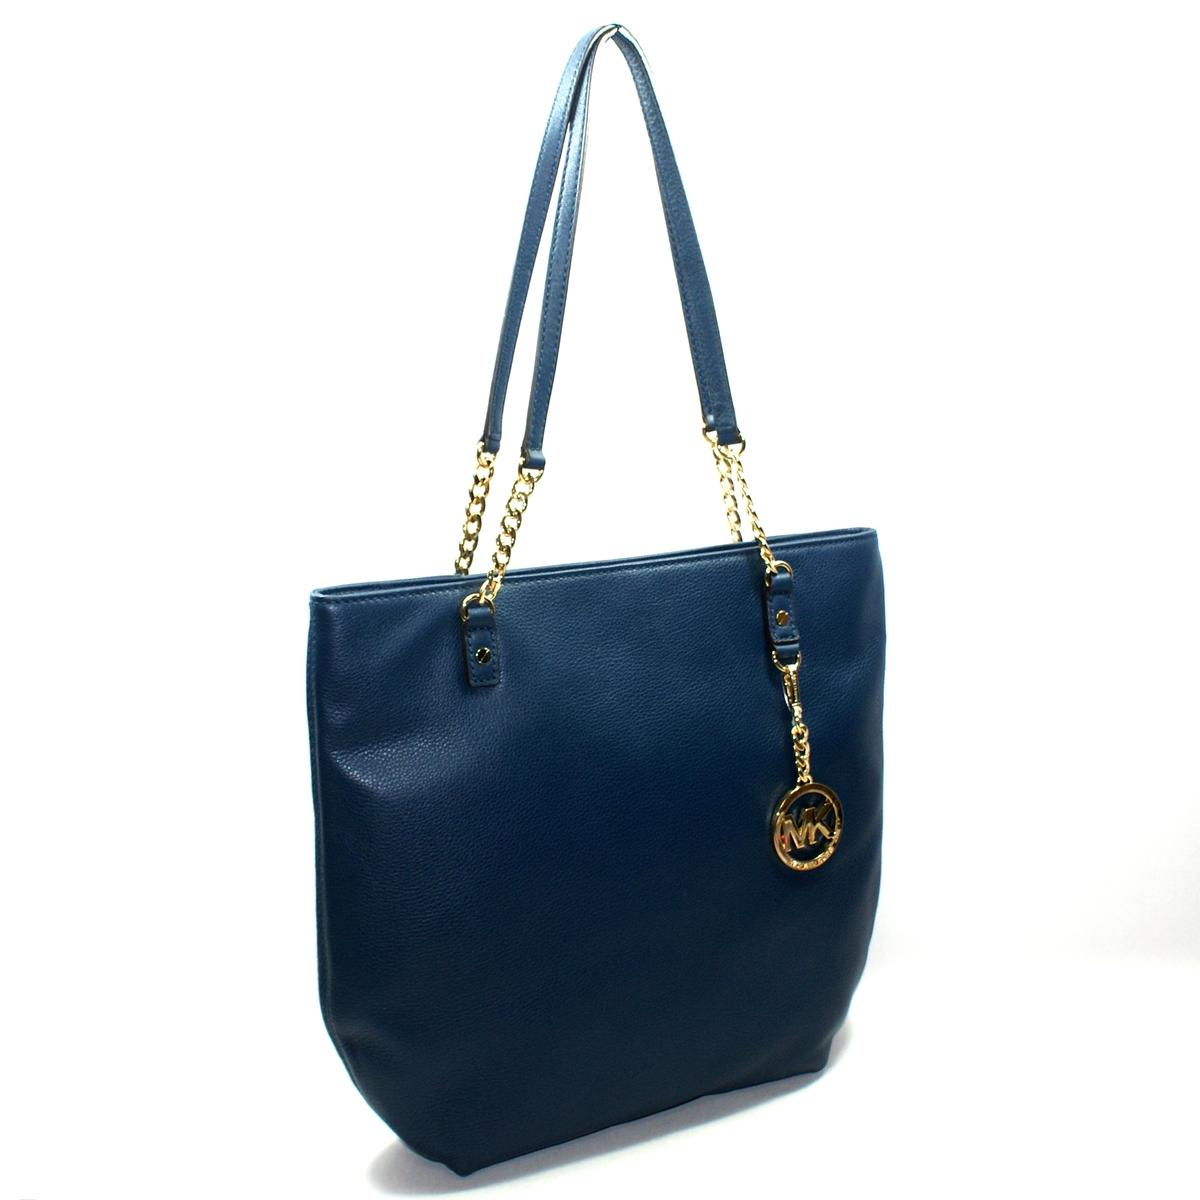 Home Michael Kors Jet Set Chain Soft Genuine Leather Tote Navy Blue